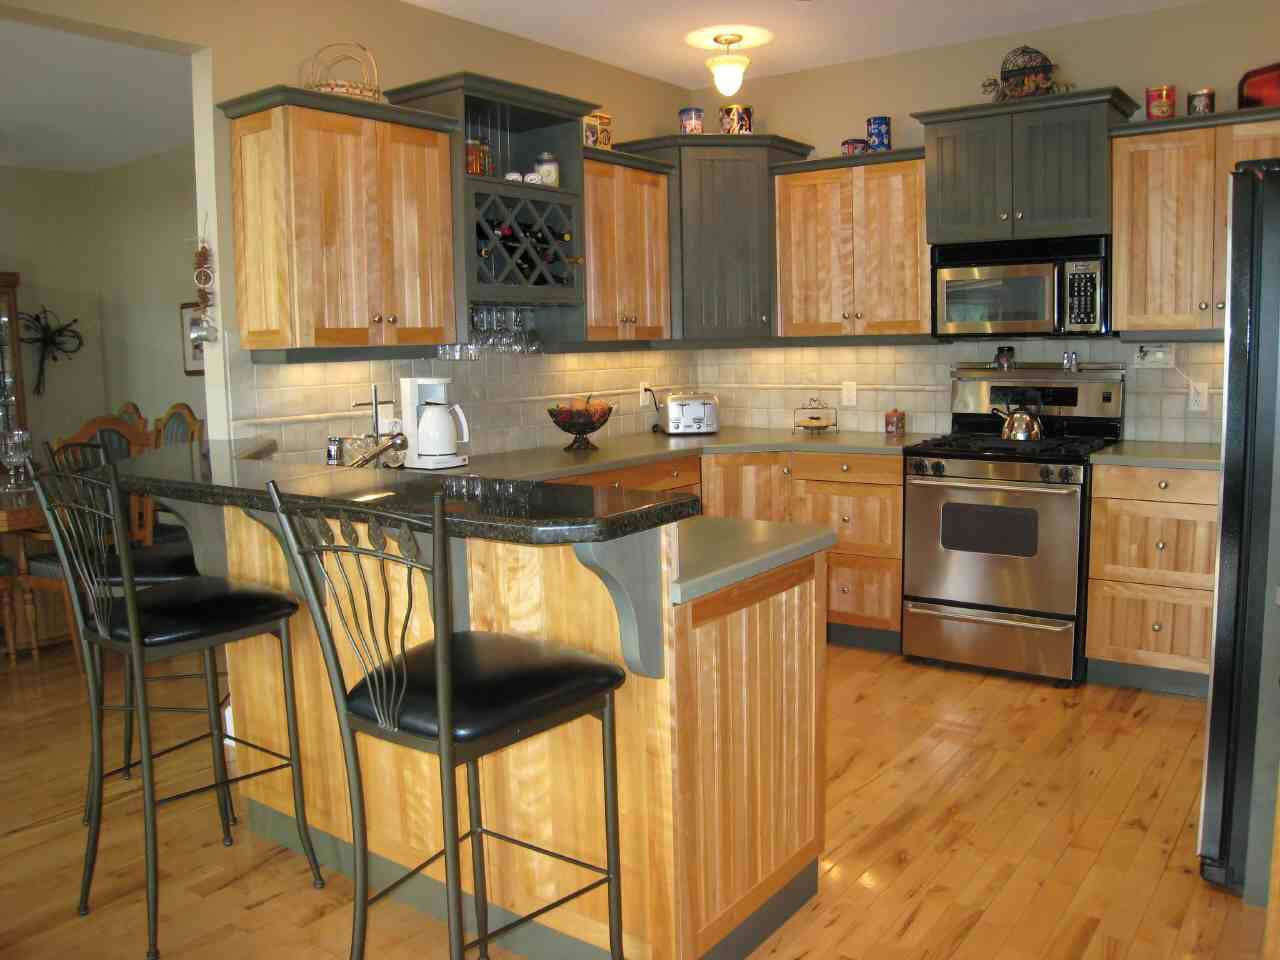 i love the two colors kitchen design ideas pinterest small kitchens cabinets and design